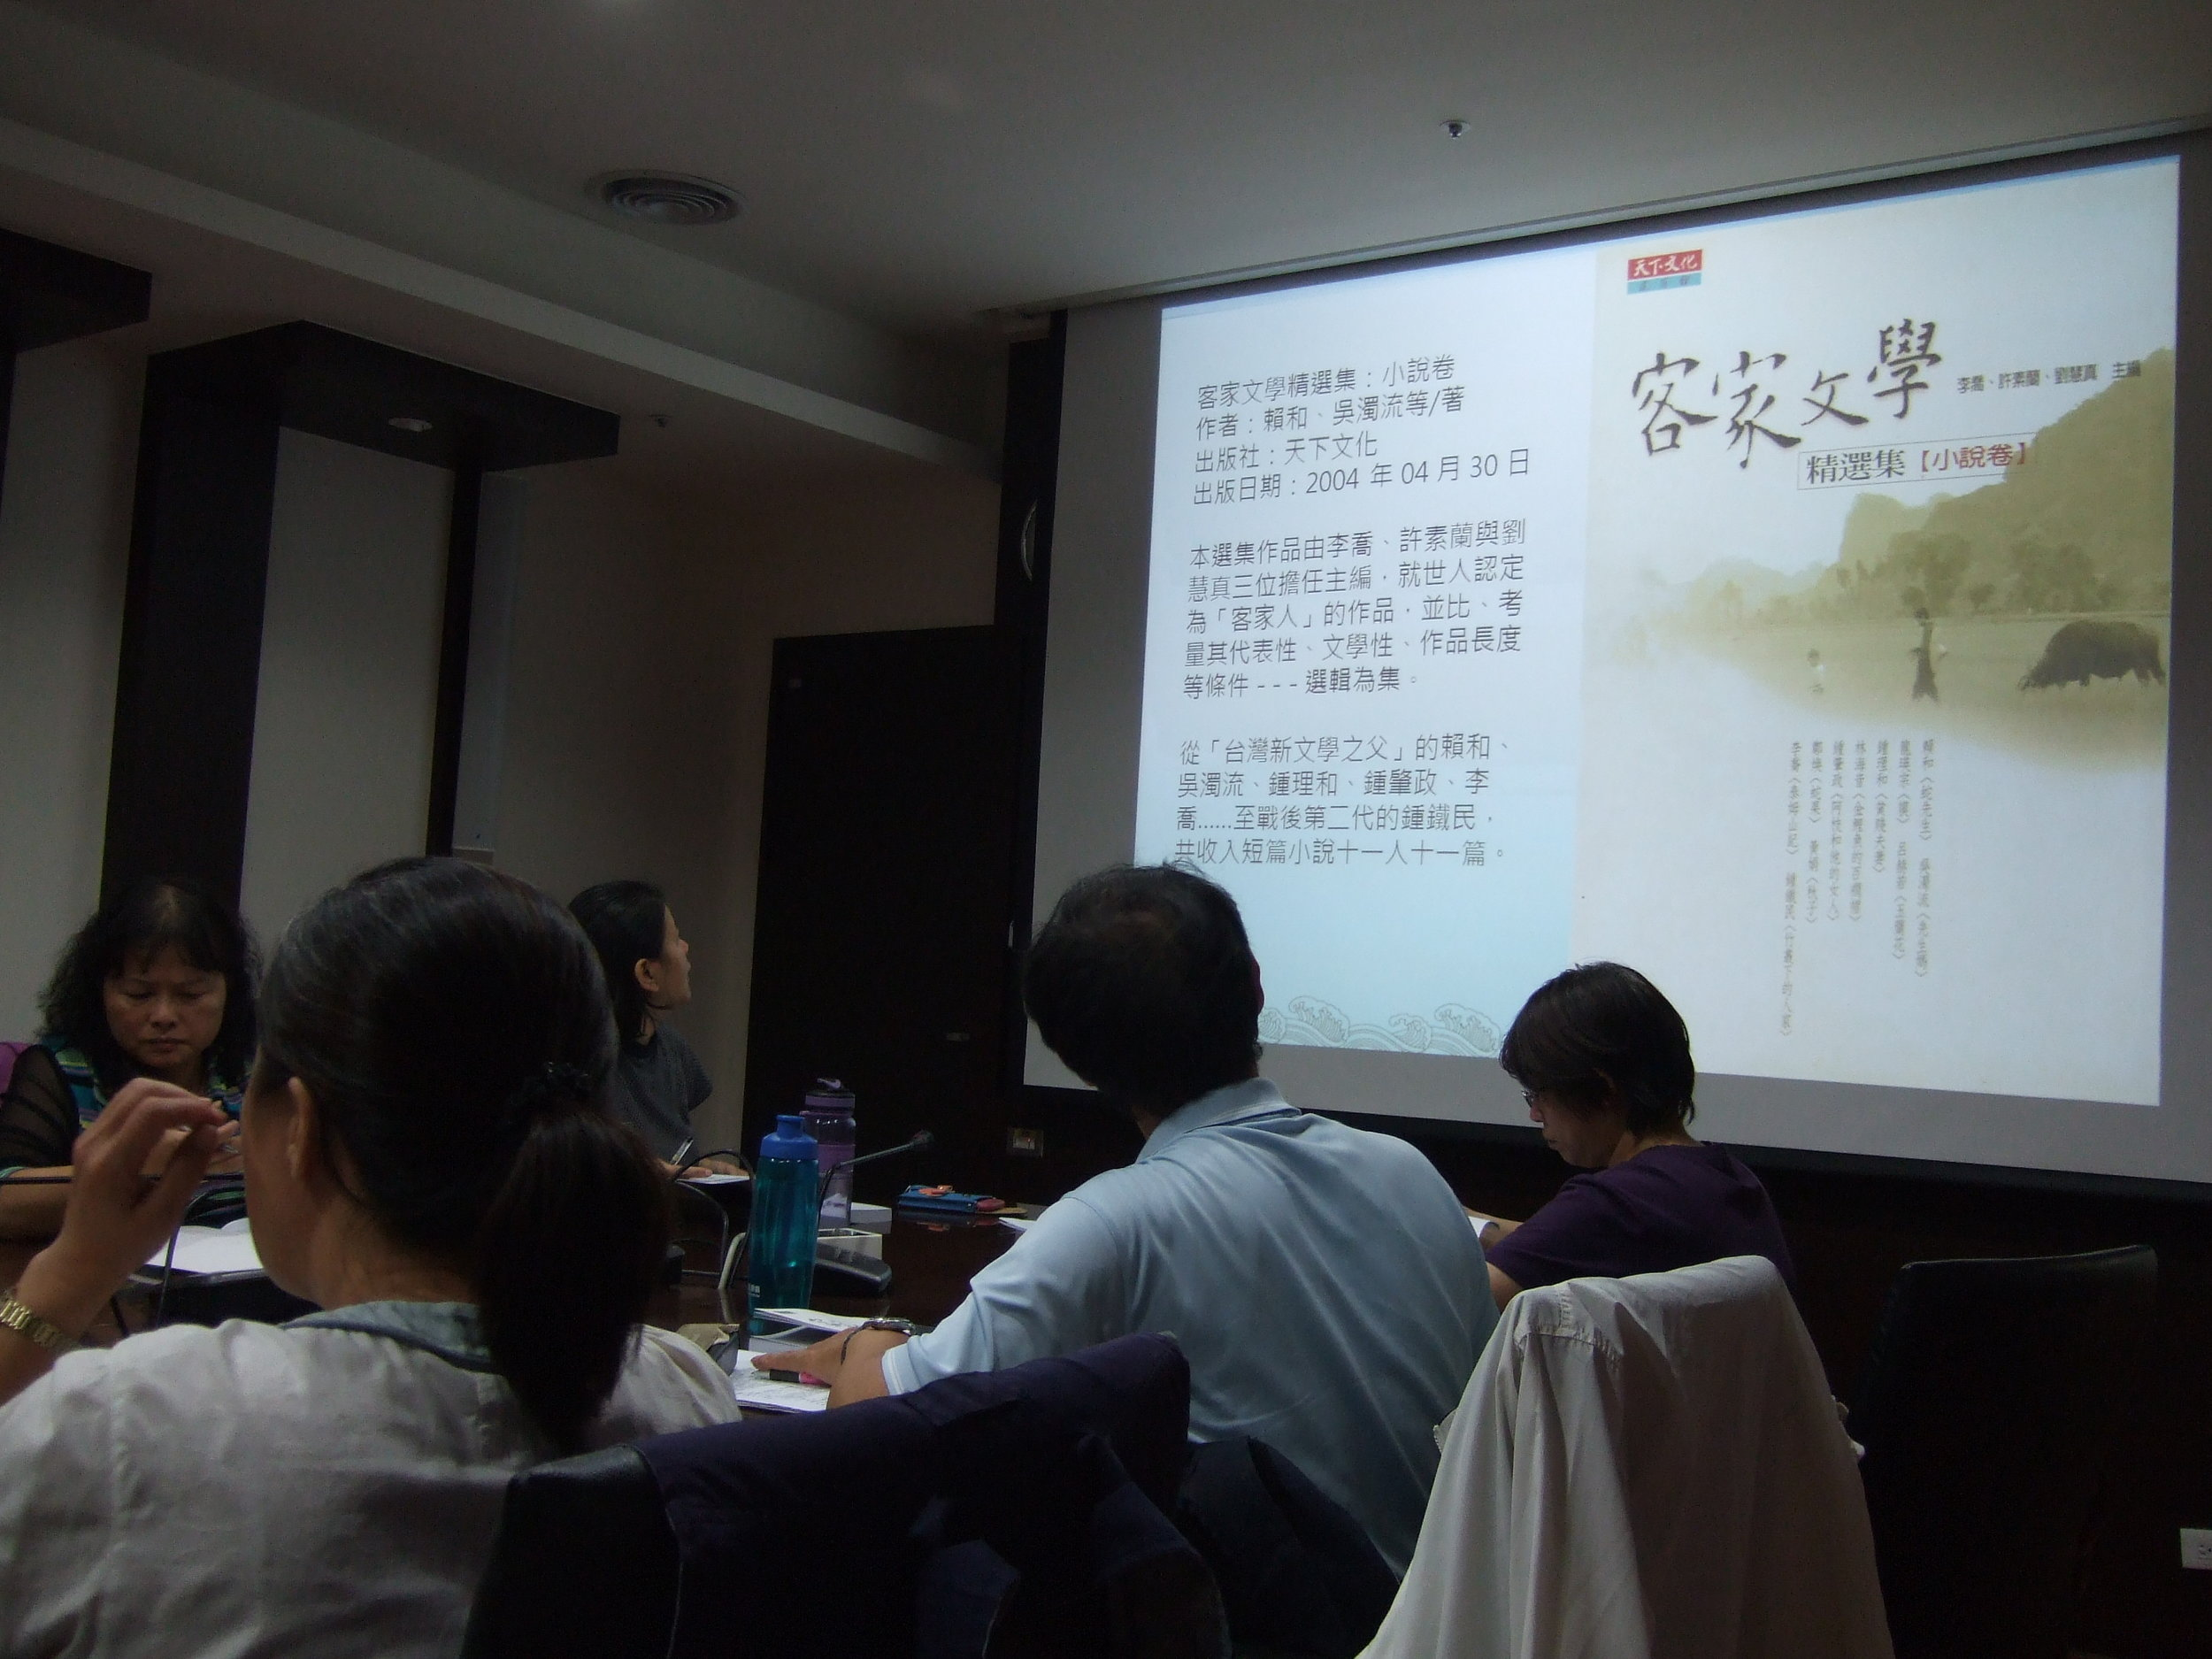 hakka language and culture-104-2-浪漫文學在客家.JPG